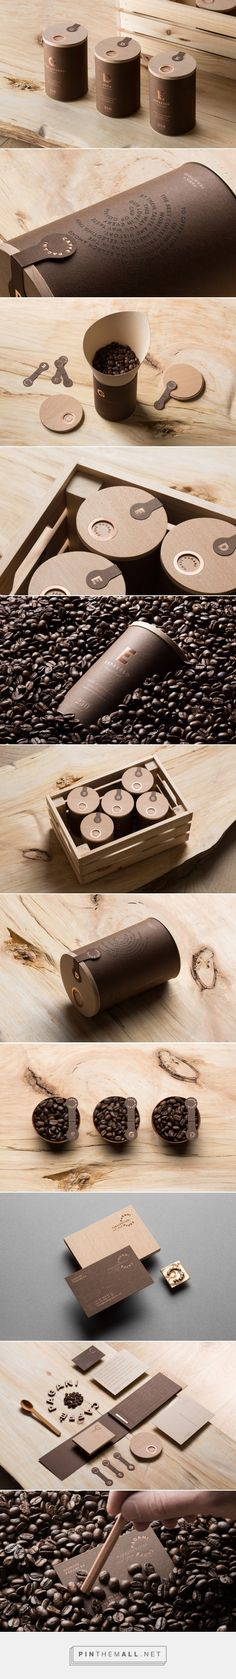 Graphic Design | Packaging Design | Caffè Pagani by Pavel Emelyanov, Irina Emelyanova, Eskimo Design, Anatoly Vasiliev